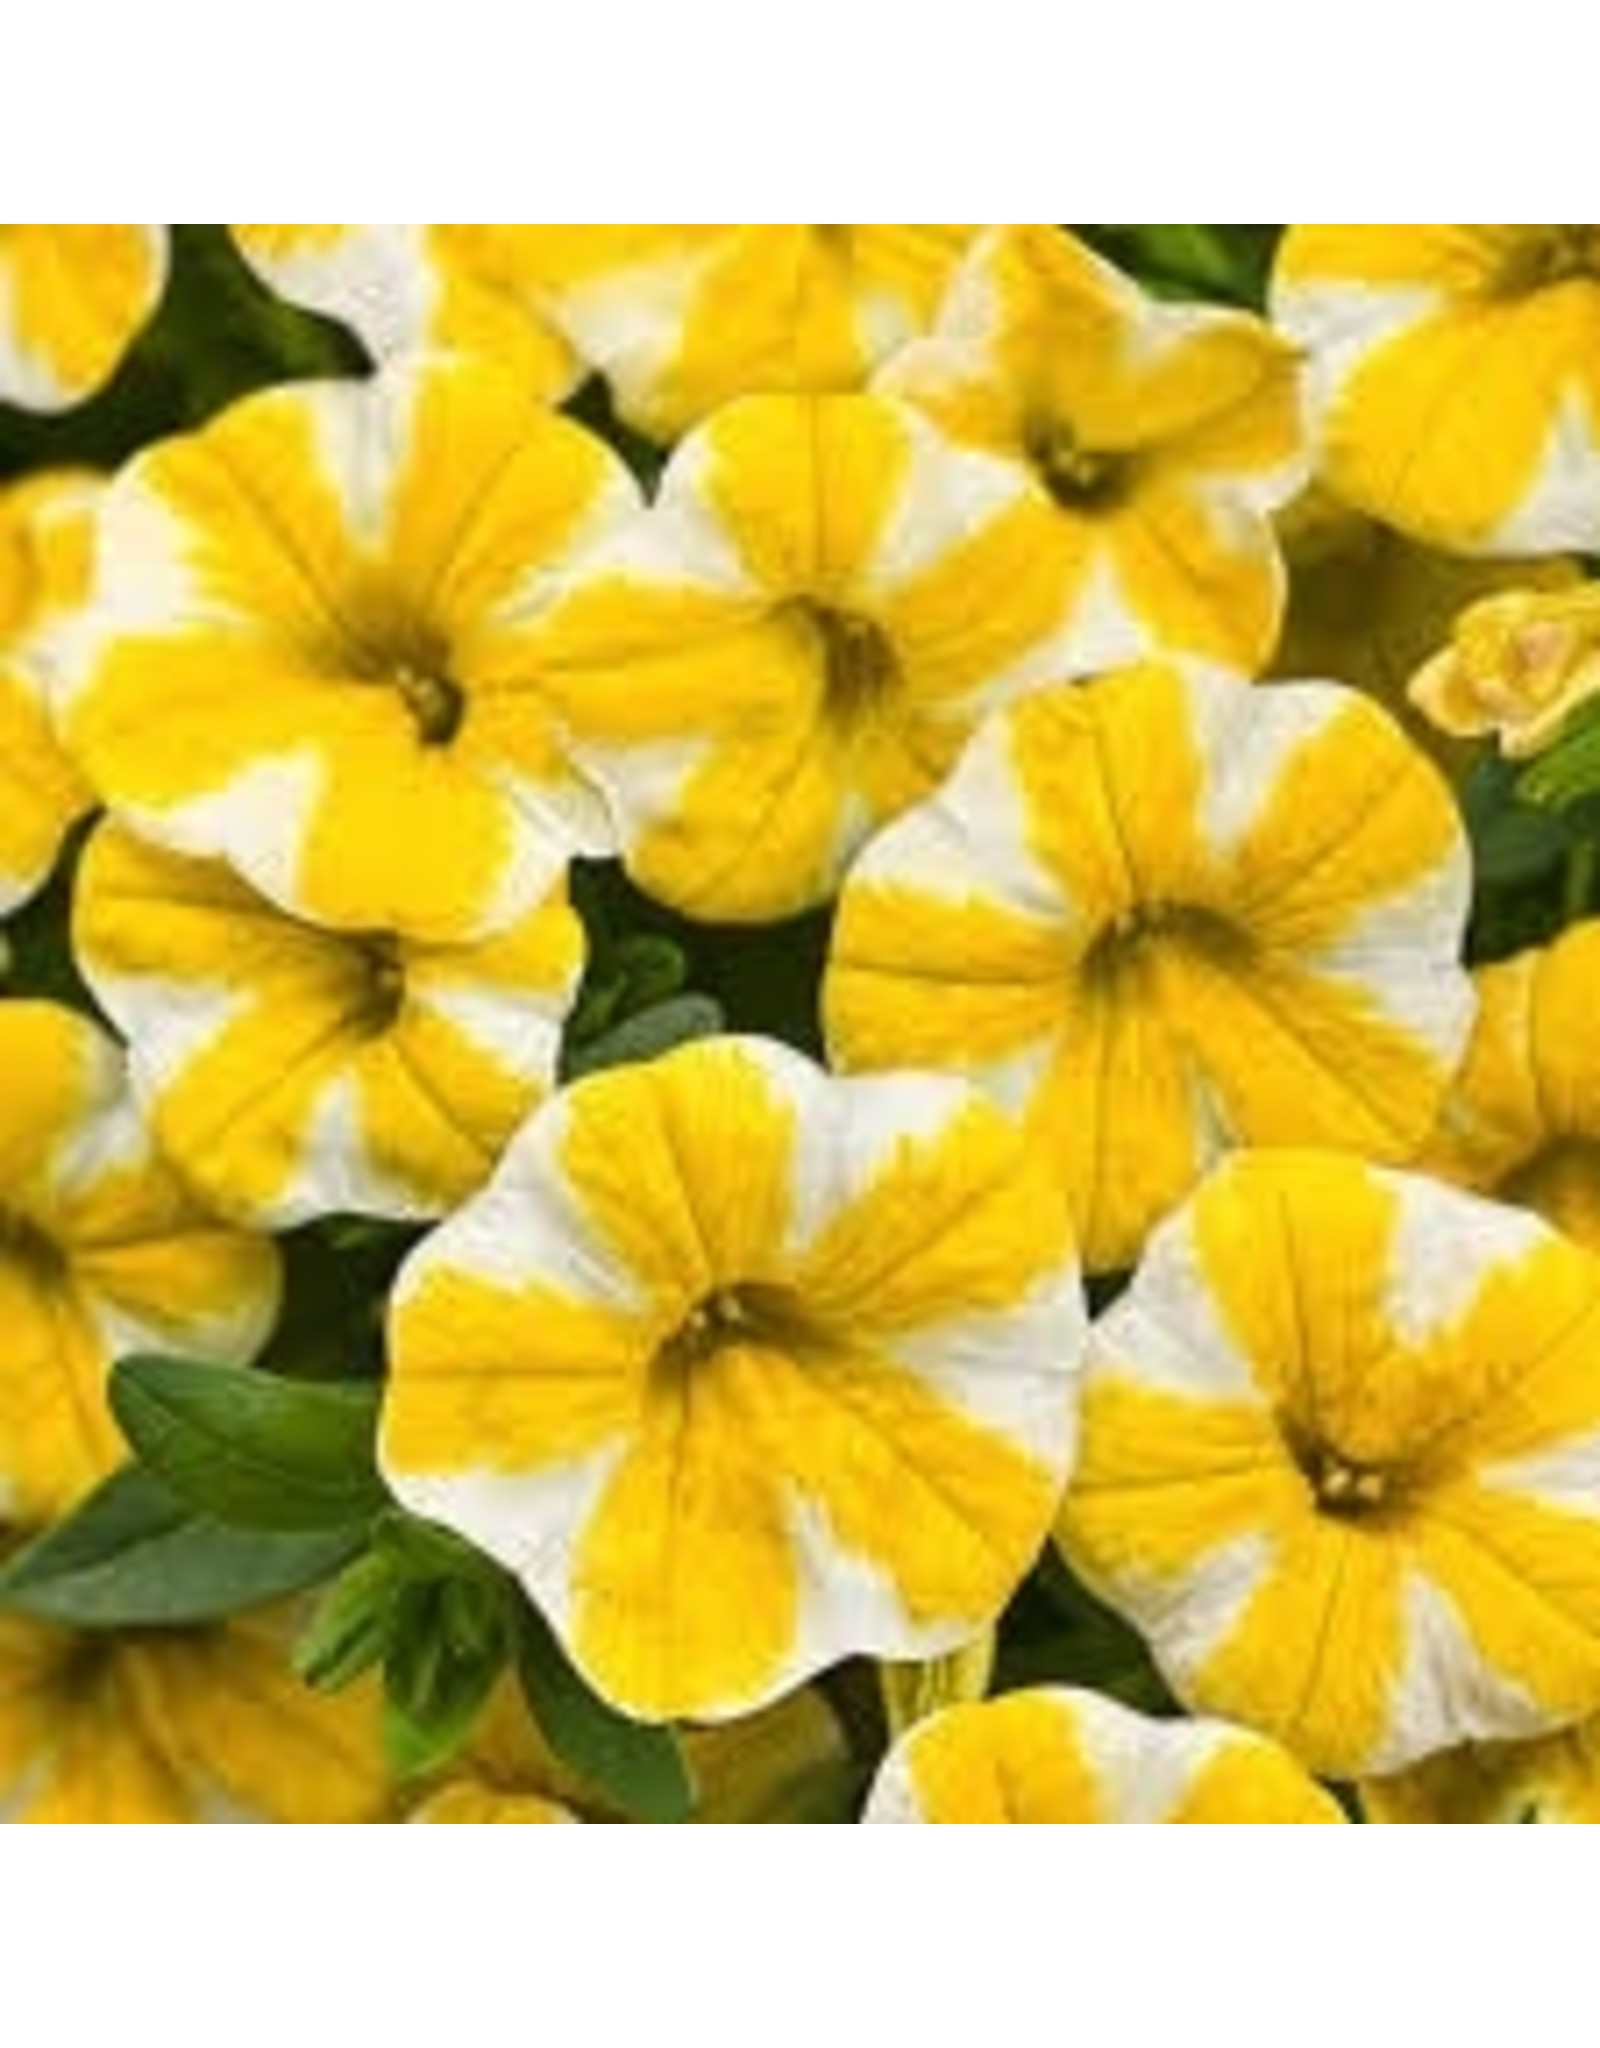 Calibrachoa 'Lemon Slice'- 4 inch